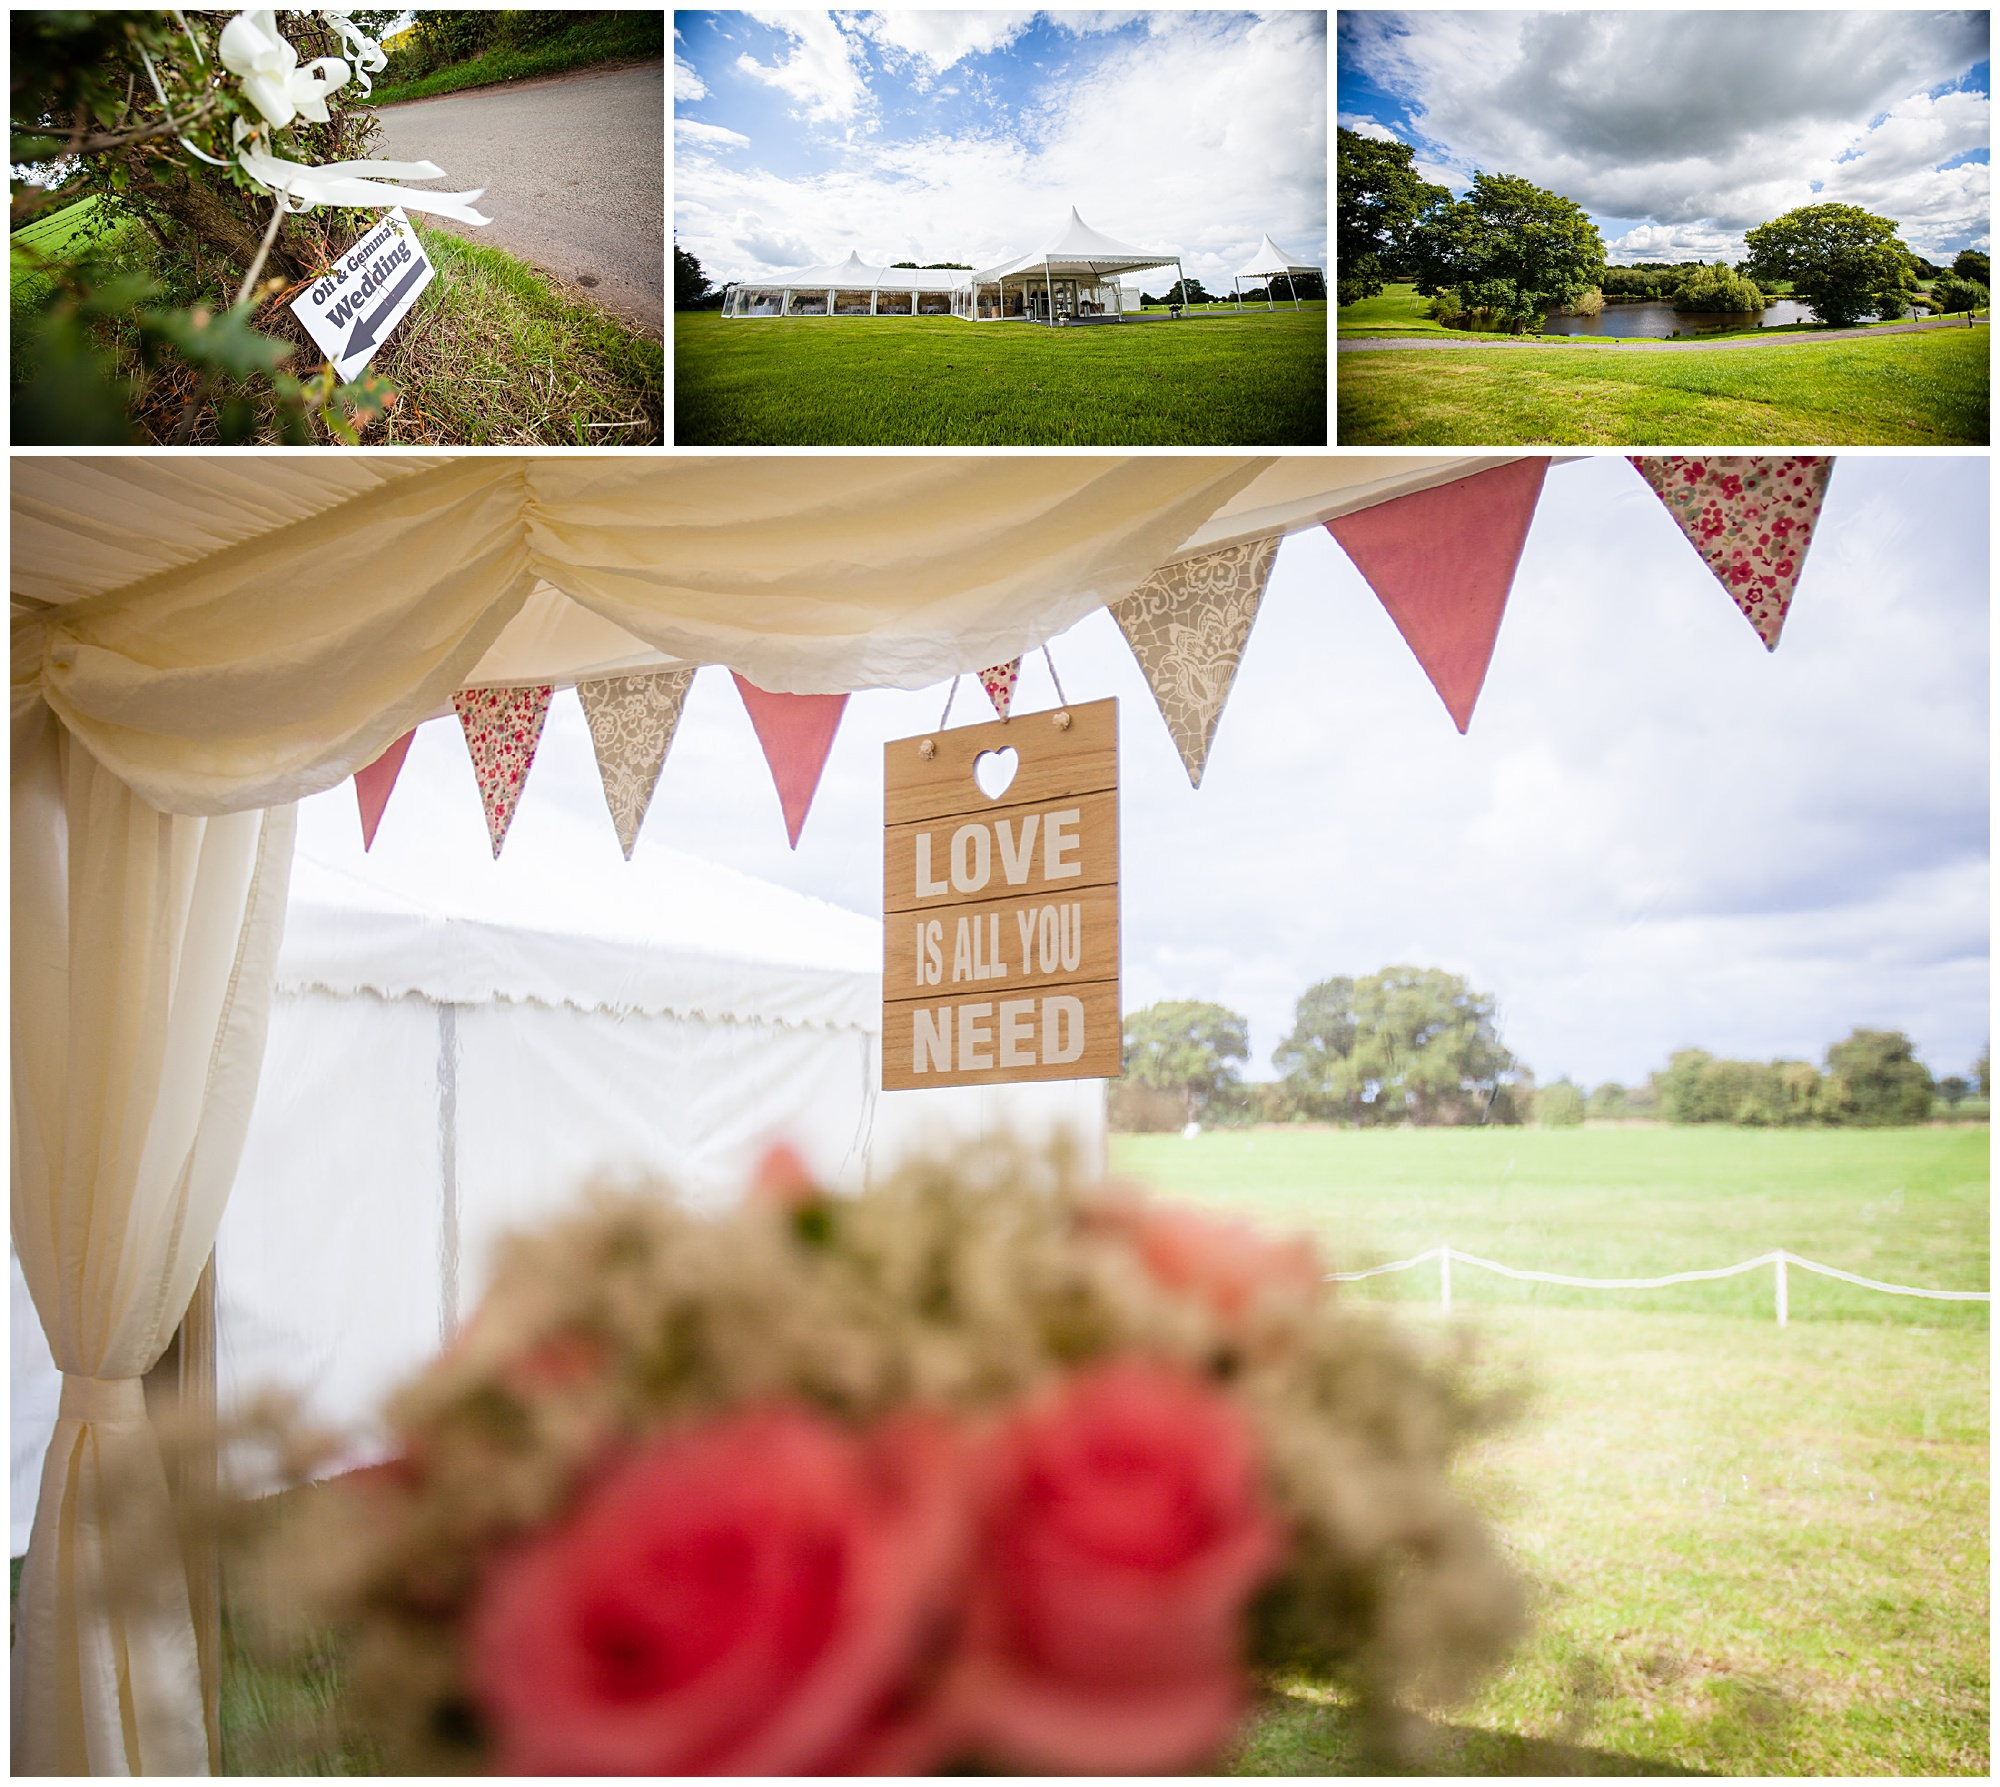 audlem cheshire marquee wedding - St James' Church Audlem Wedding Photography